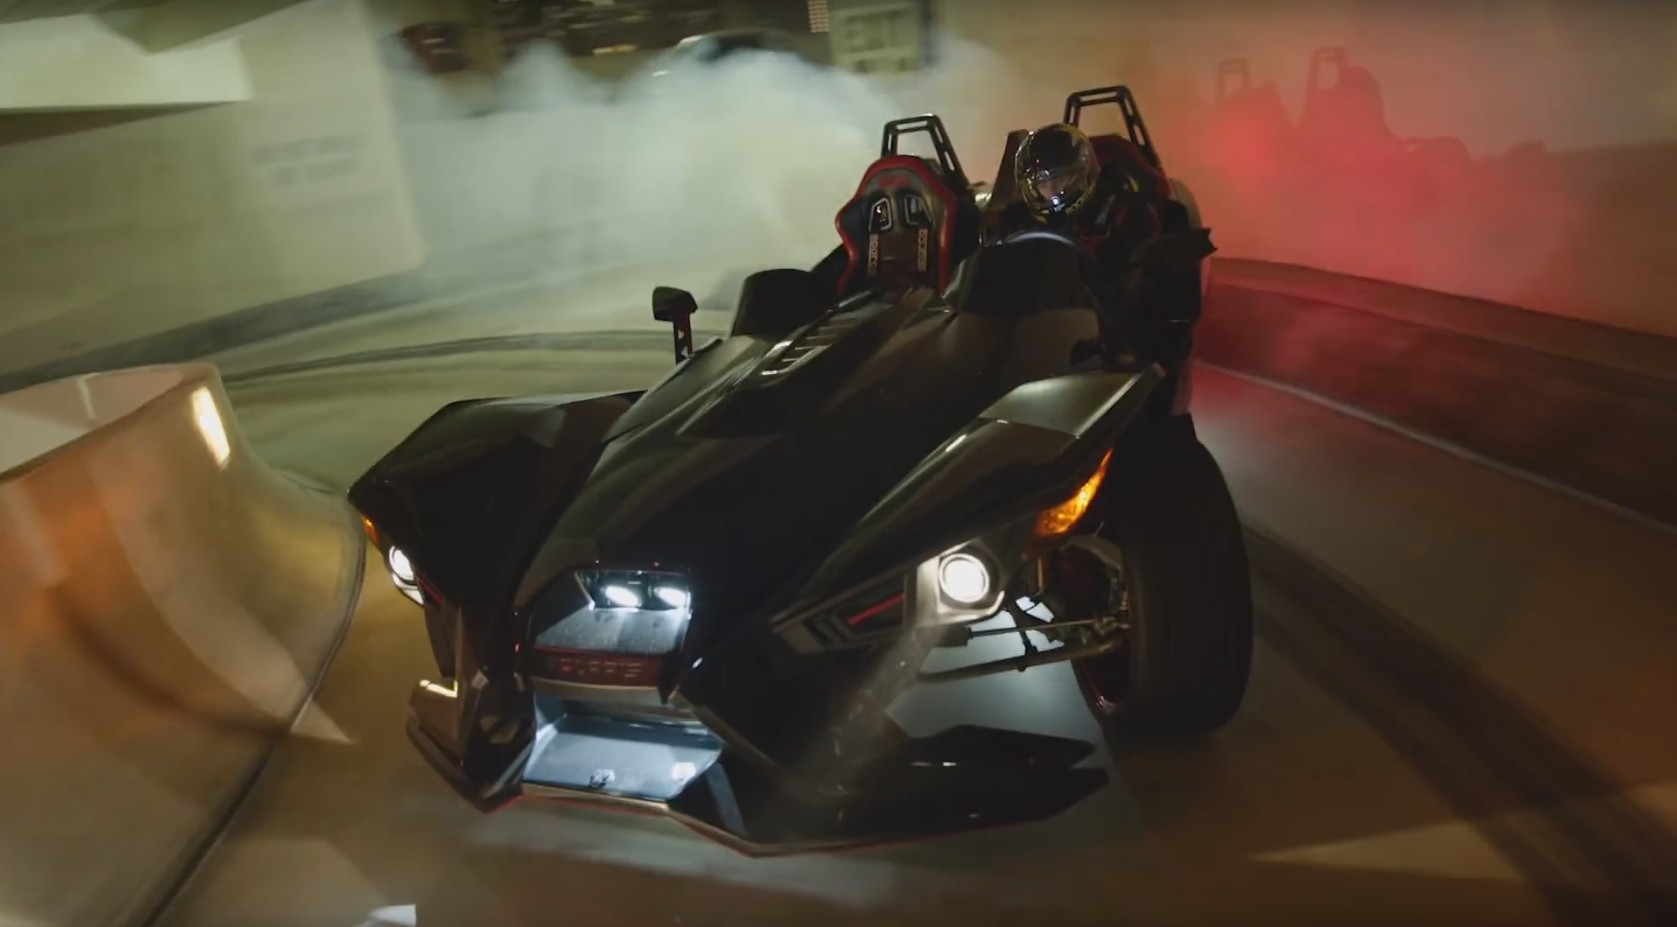 Tanner Foust rampages all over San Diego in a Polaris Slingshot